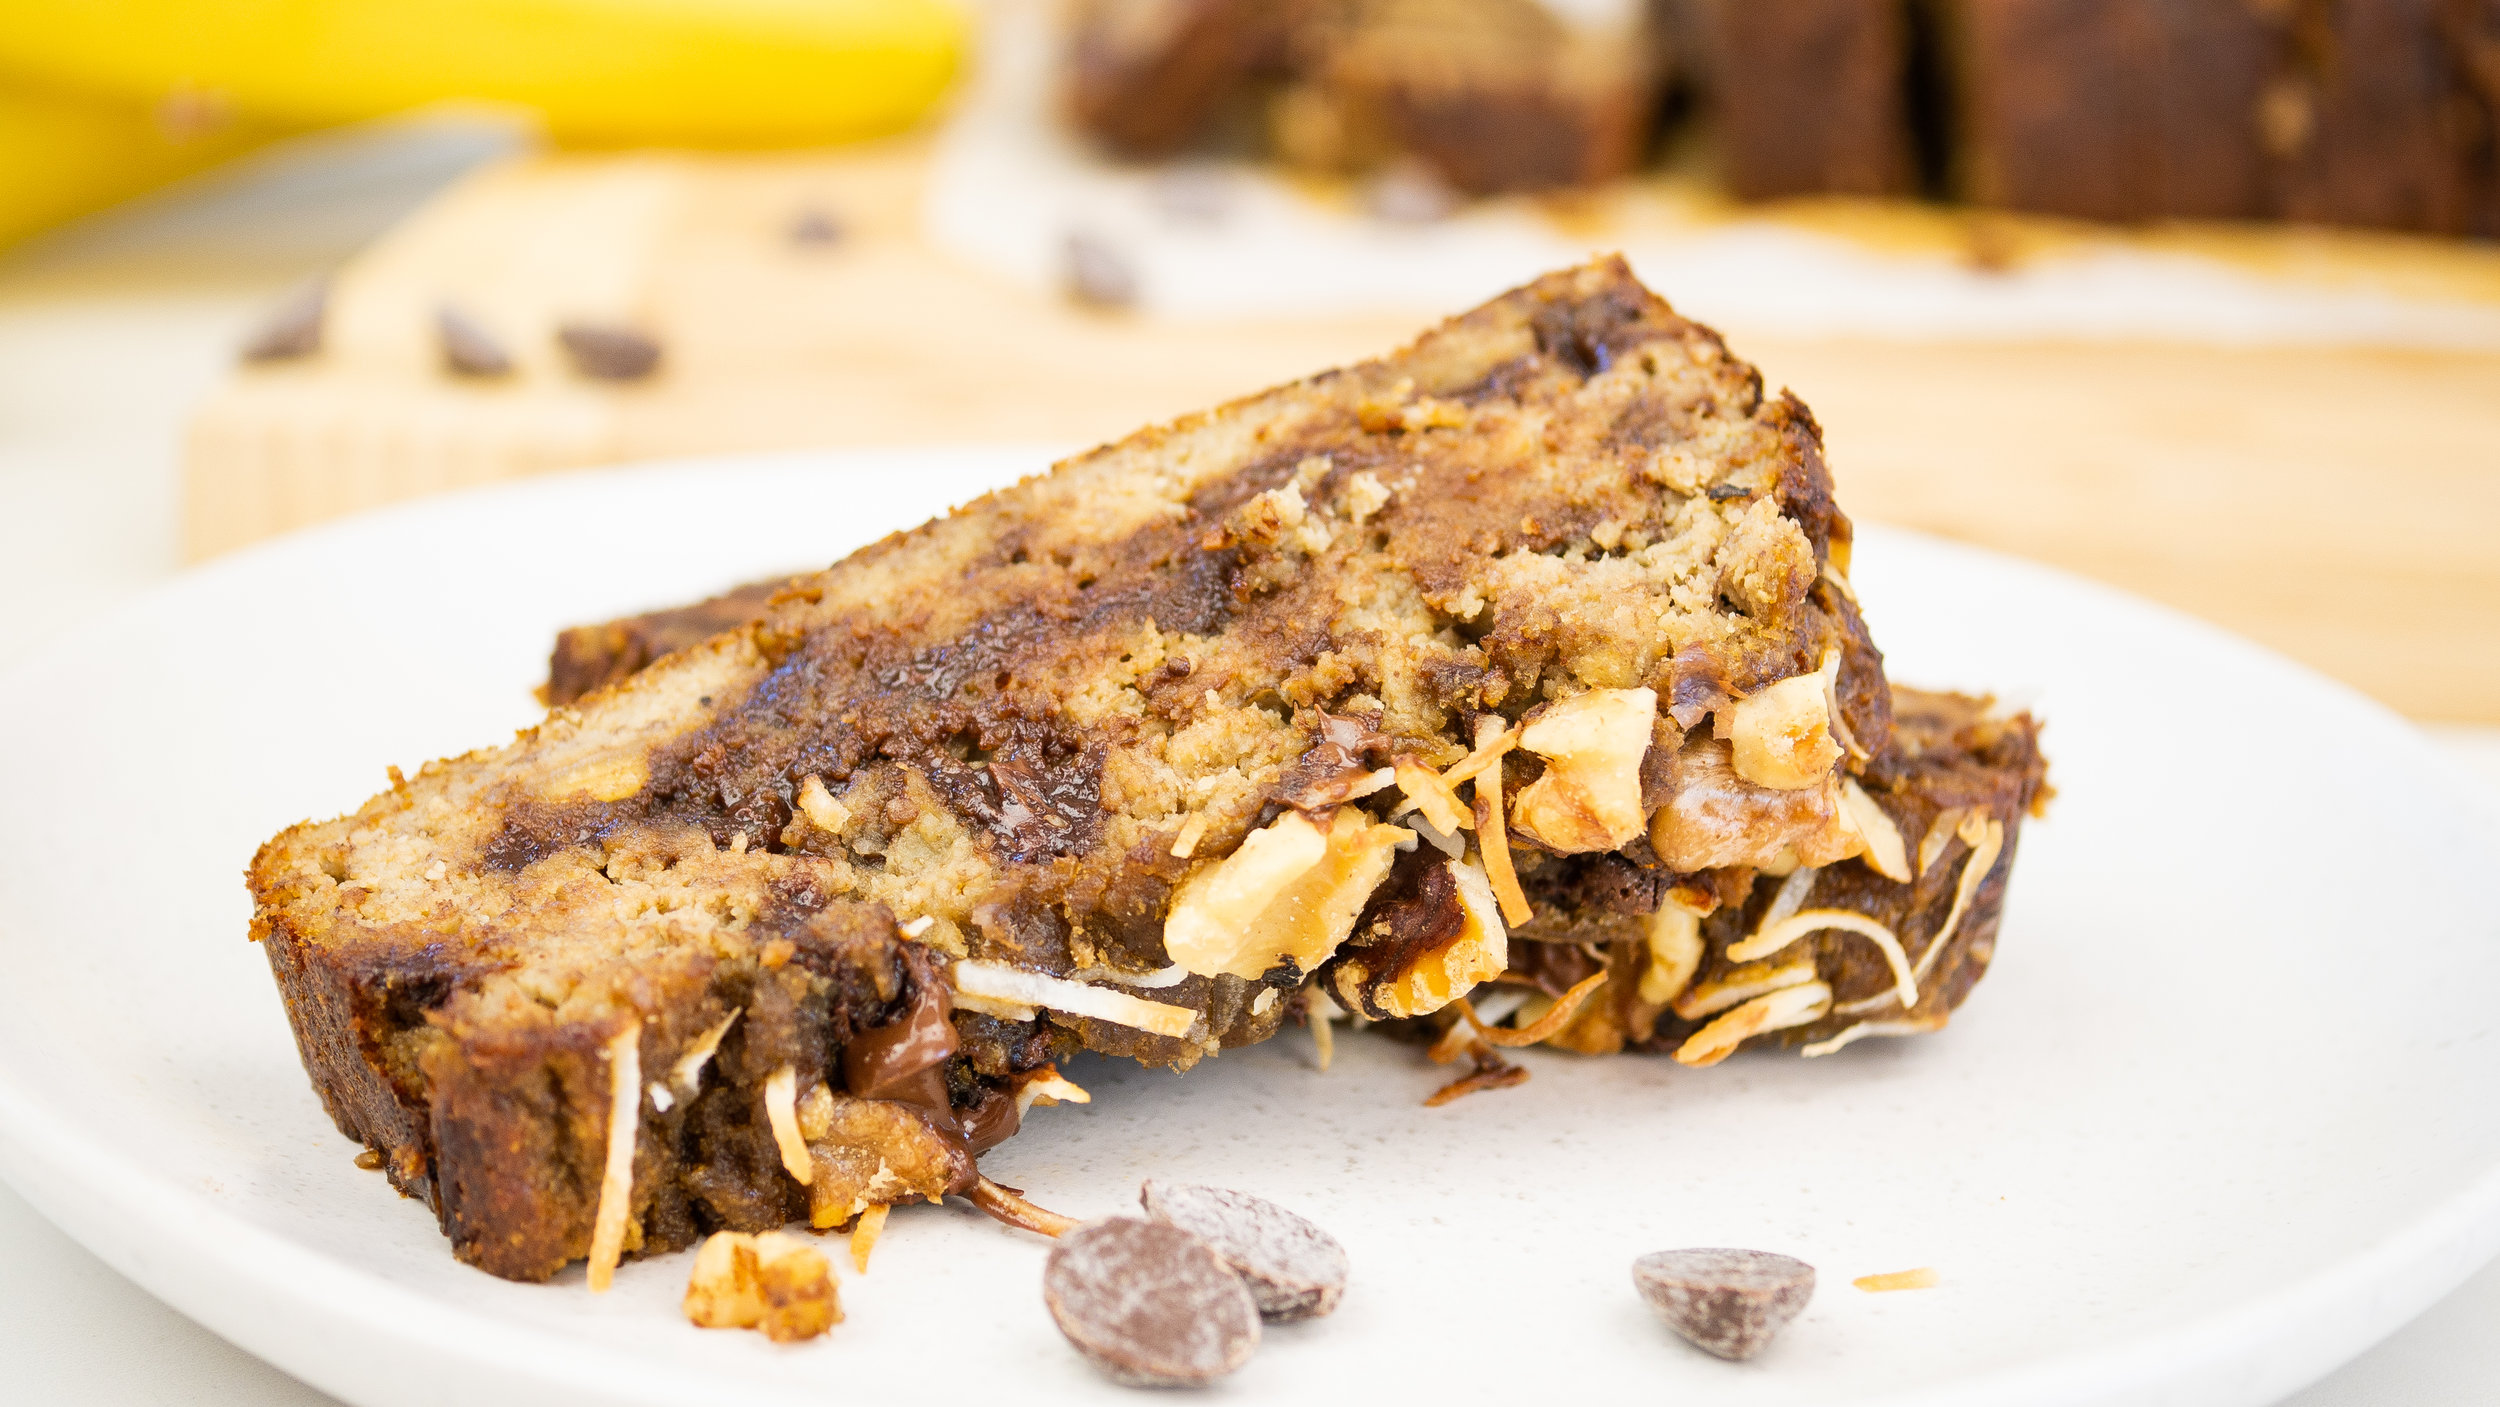 Chocolate Banana Loaf